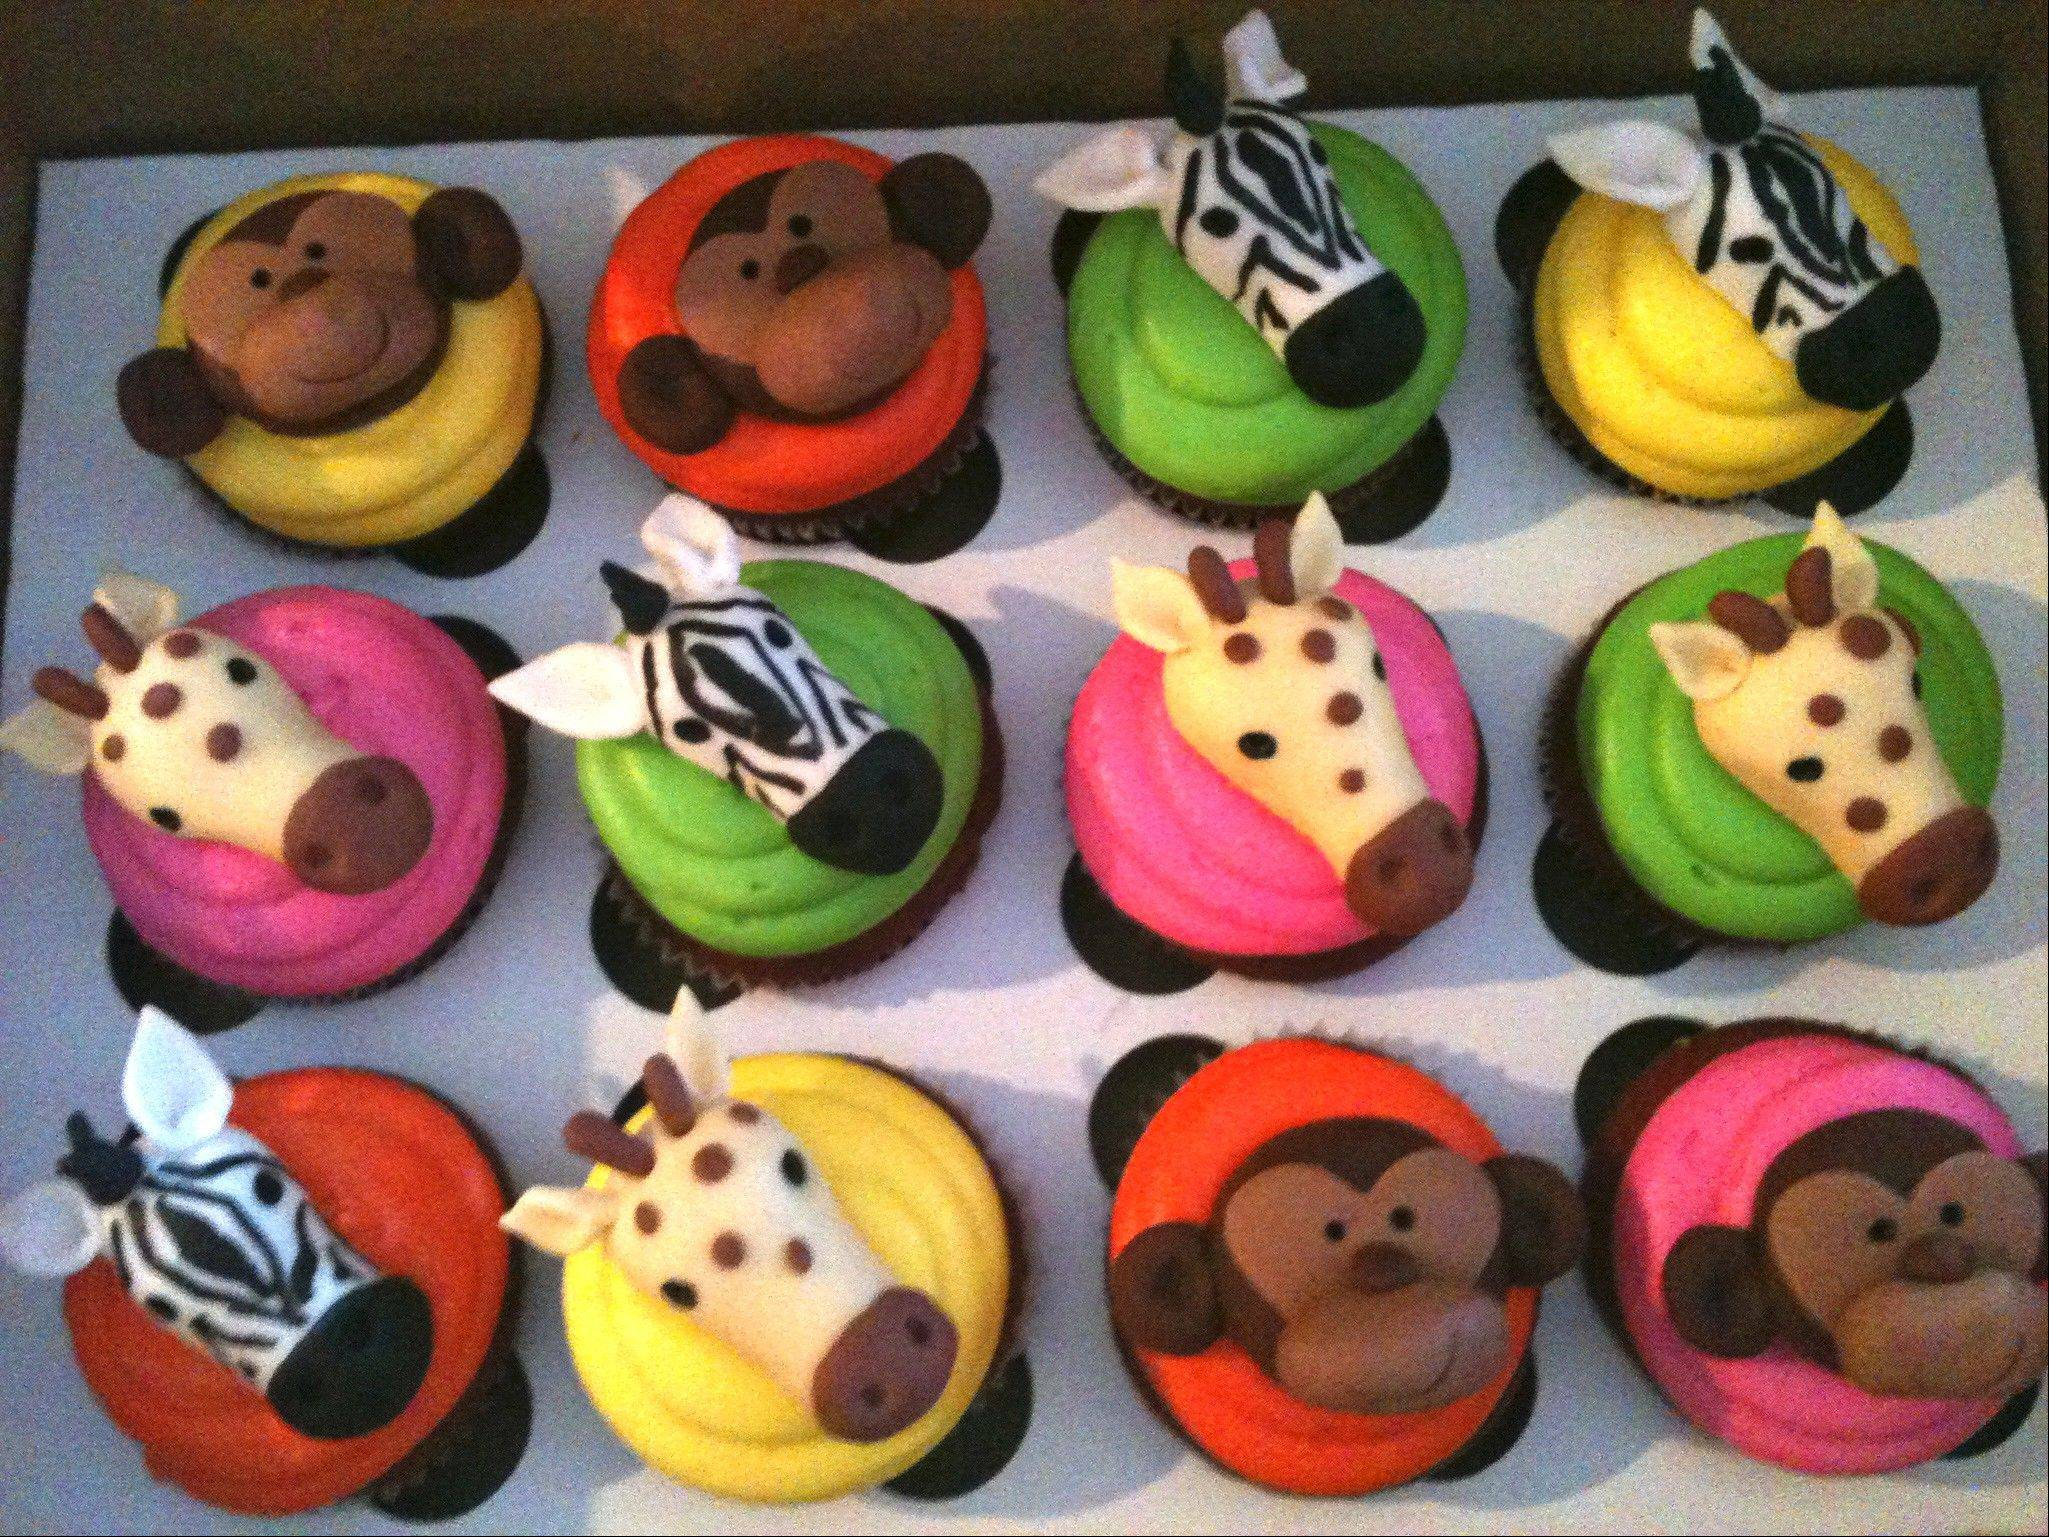 Sugar Monkey cupcakes can be customized to fit your child's birthday theme.